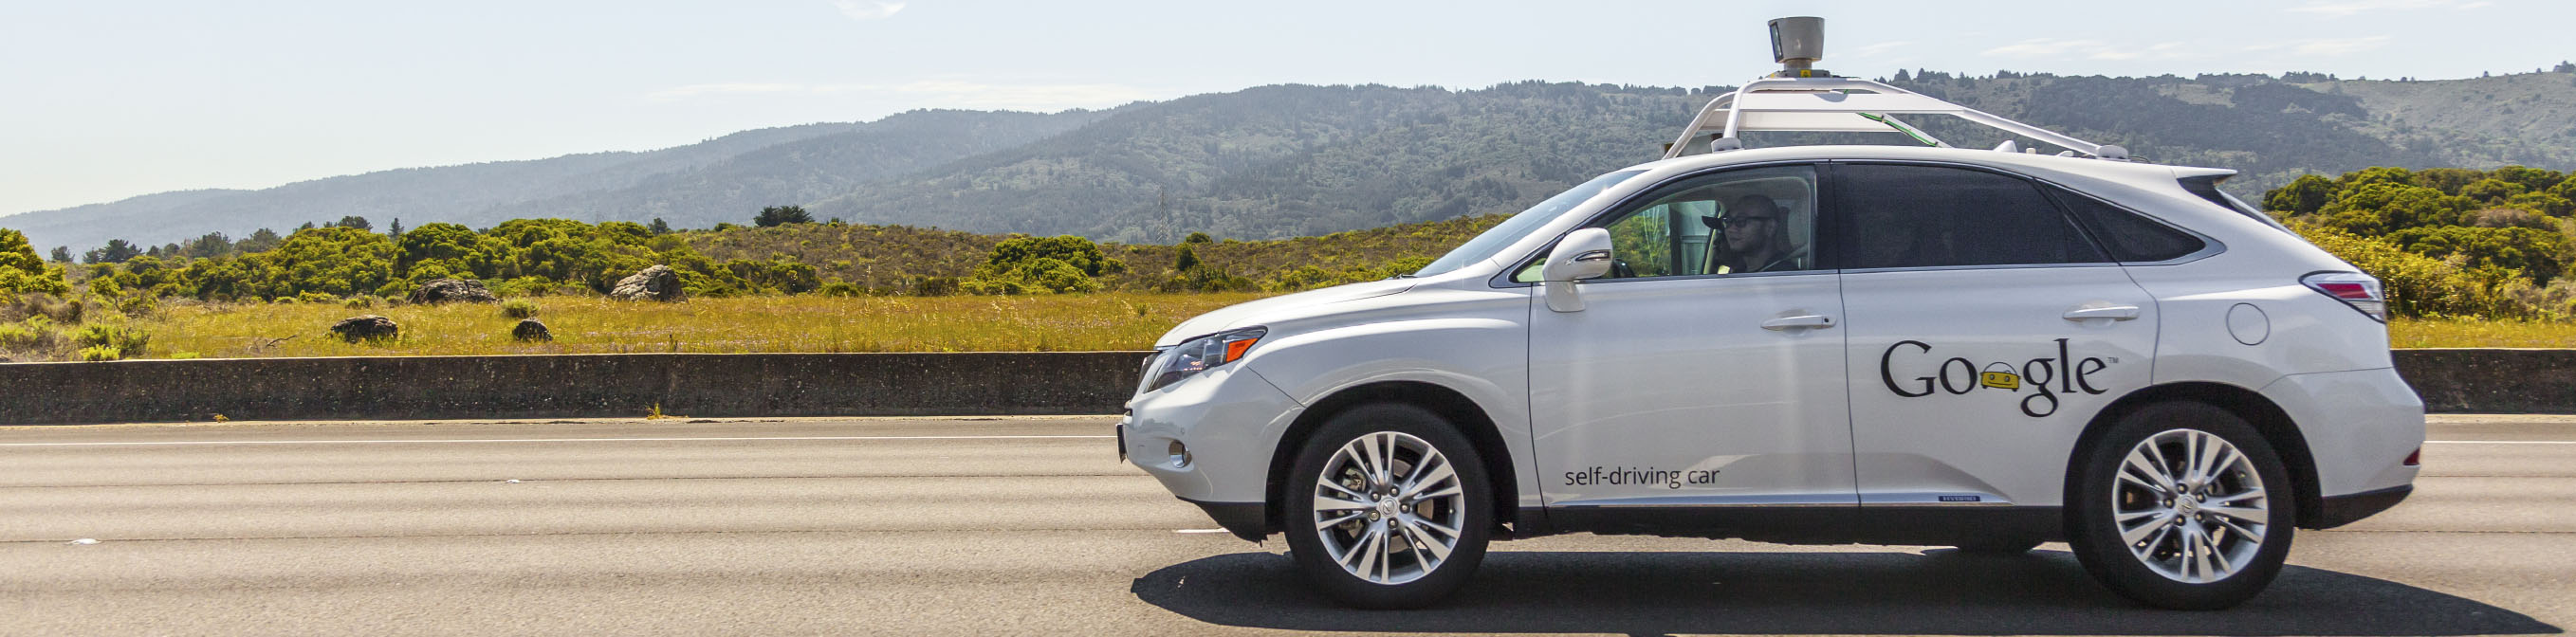 Google's Self-Driving Lexus RX 350